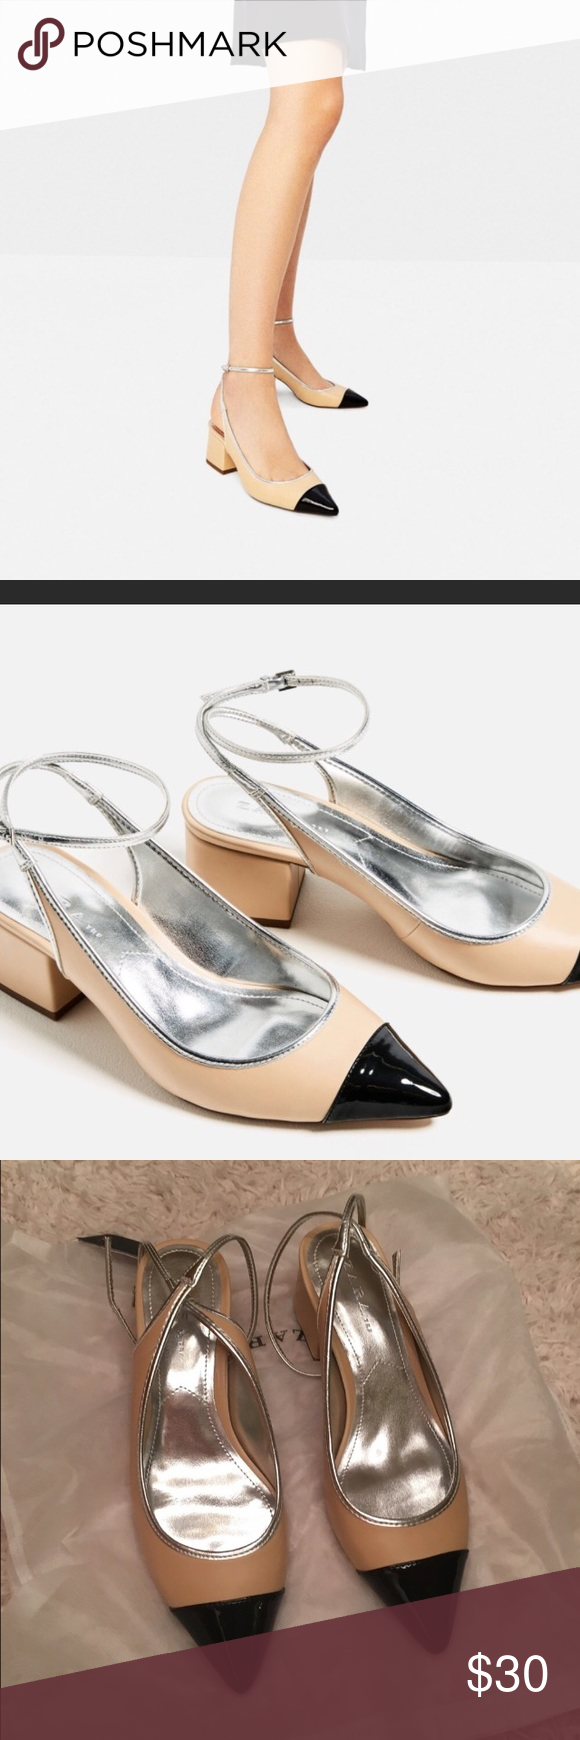 ZARA COCO CHANEL STYLE PUMPS SHOES NEW